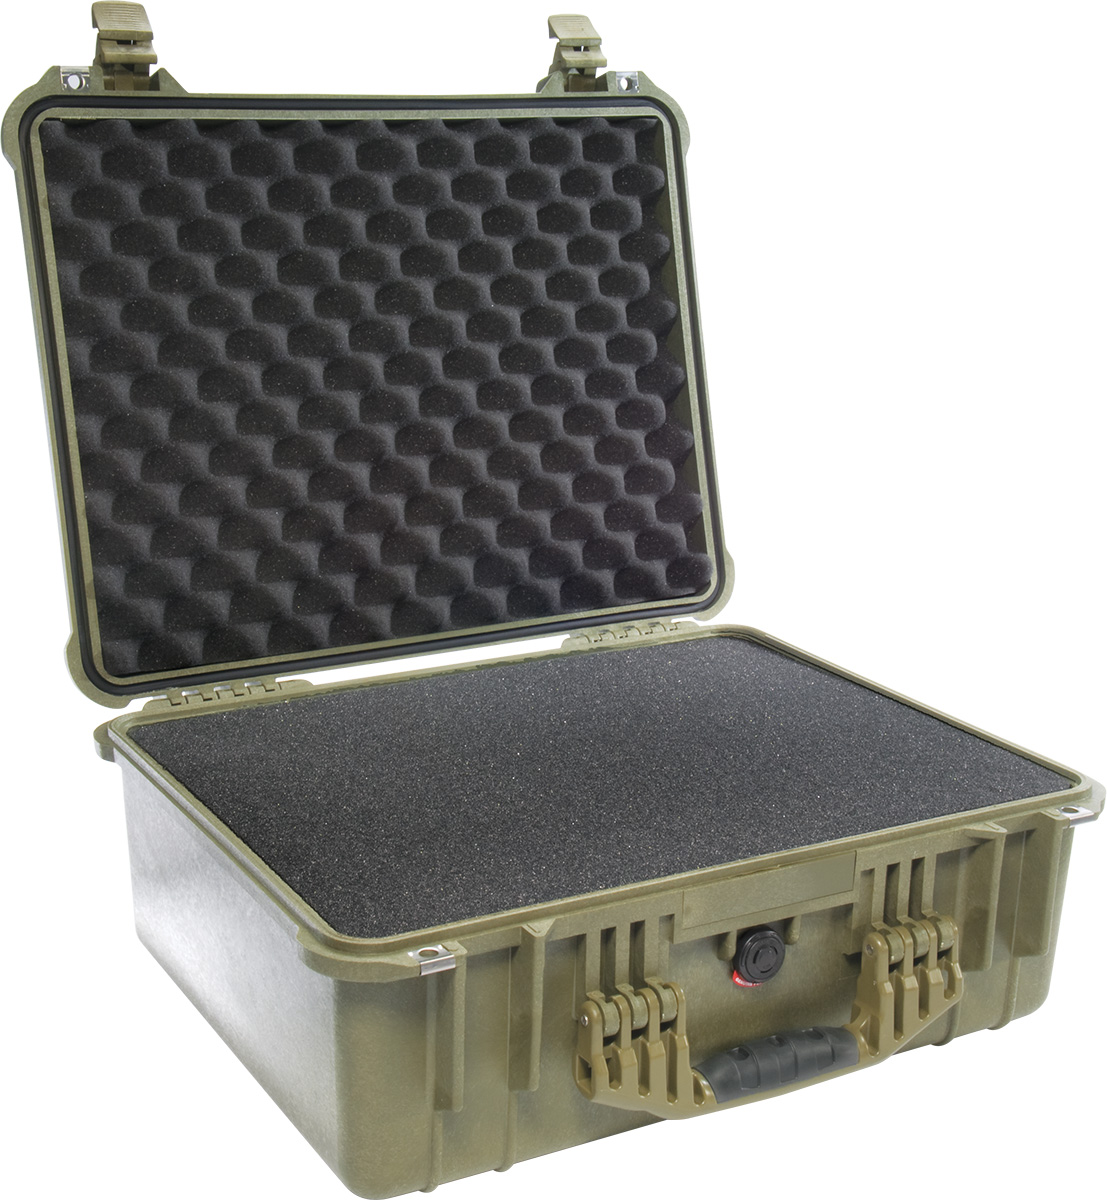 pelican hard shell waterproof tactical case